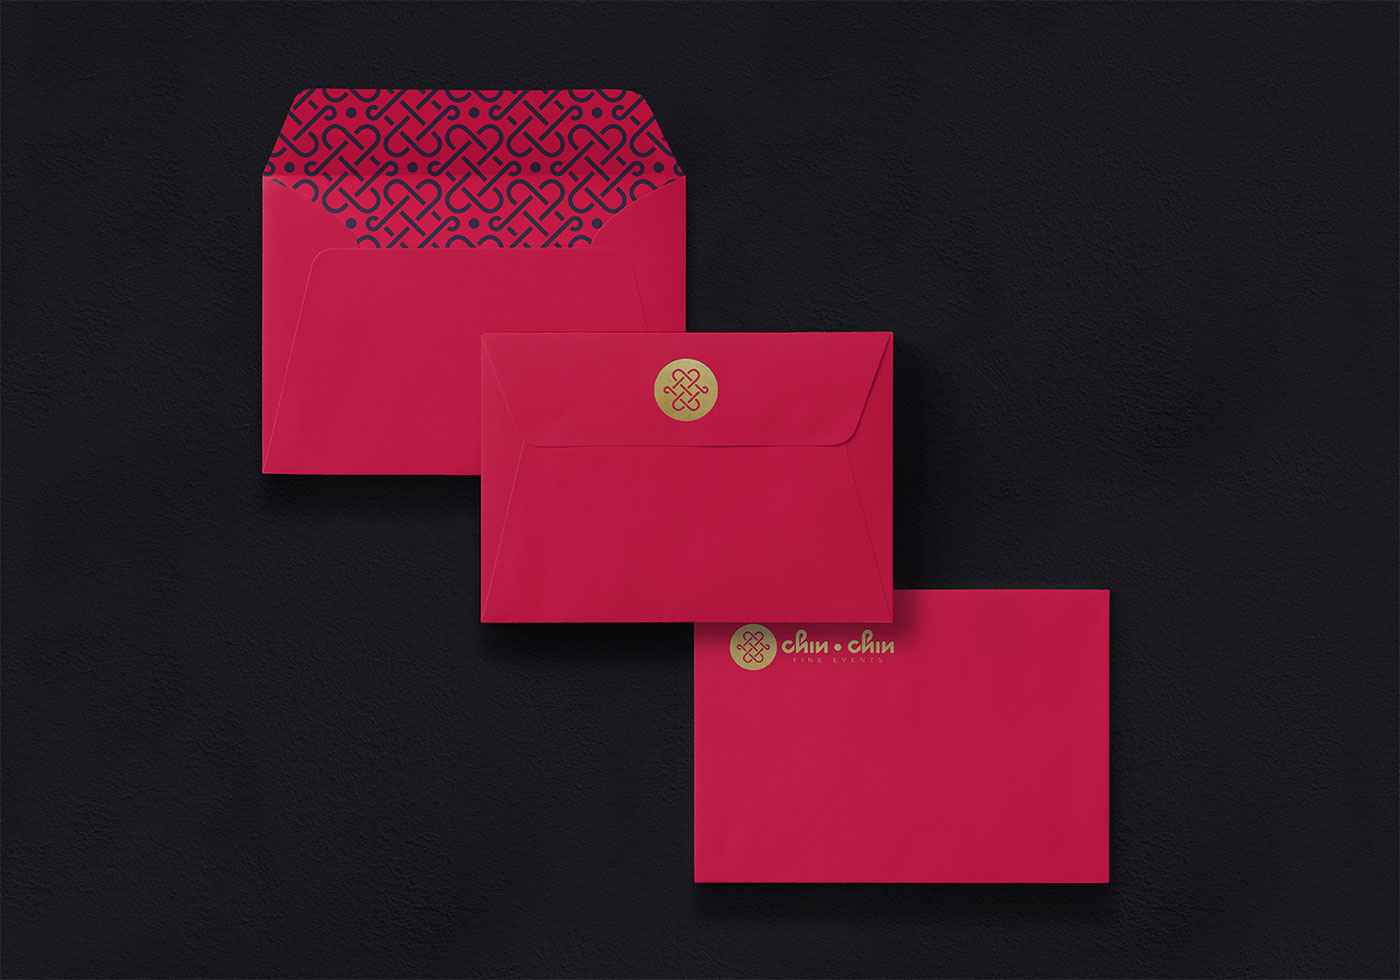 Outfit Branding & Design Chin Chin Fine Events Envelopes